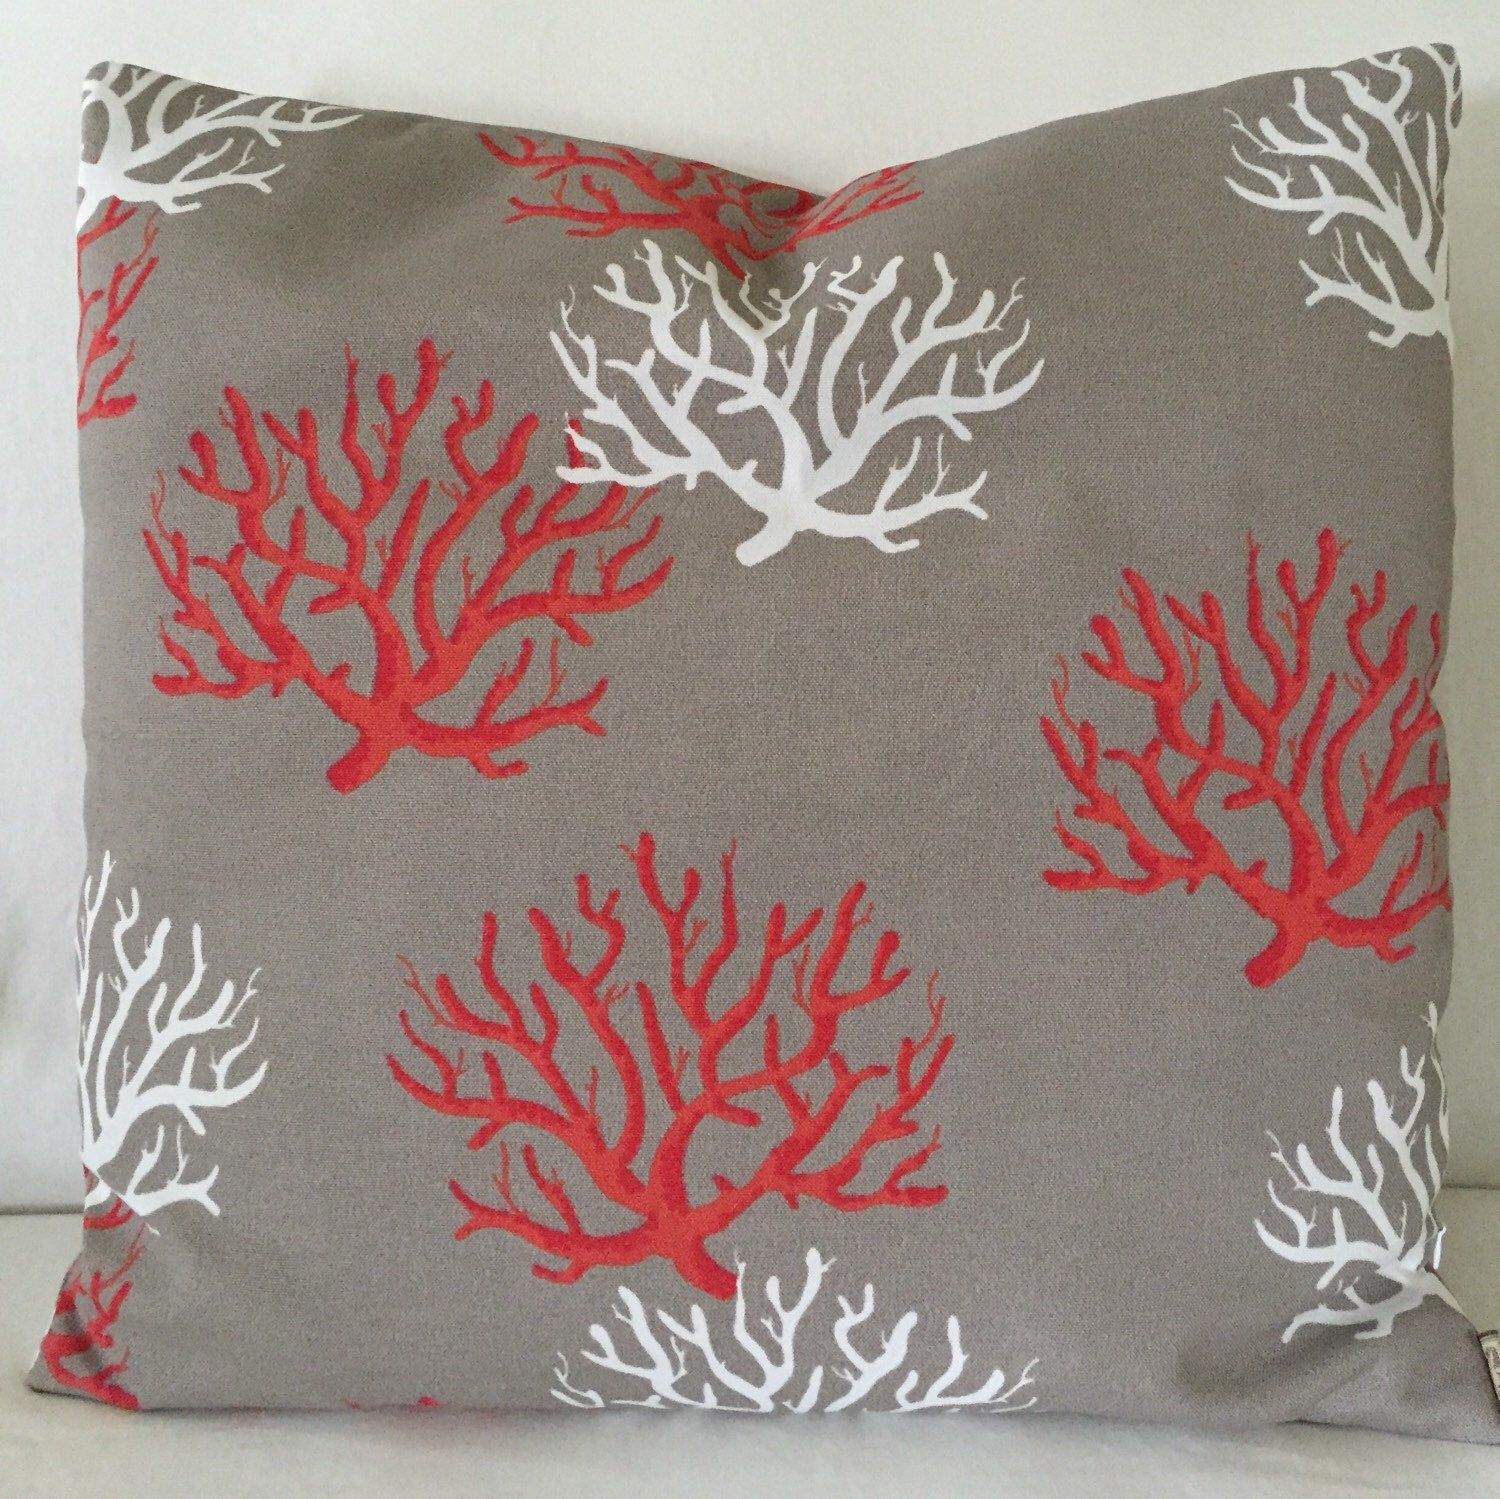 x cover pillow gallery colored coral covers cushion salmon throw cases bedding by blanket